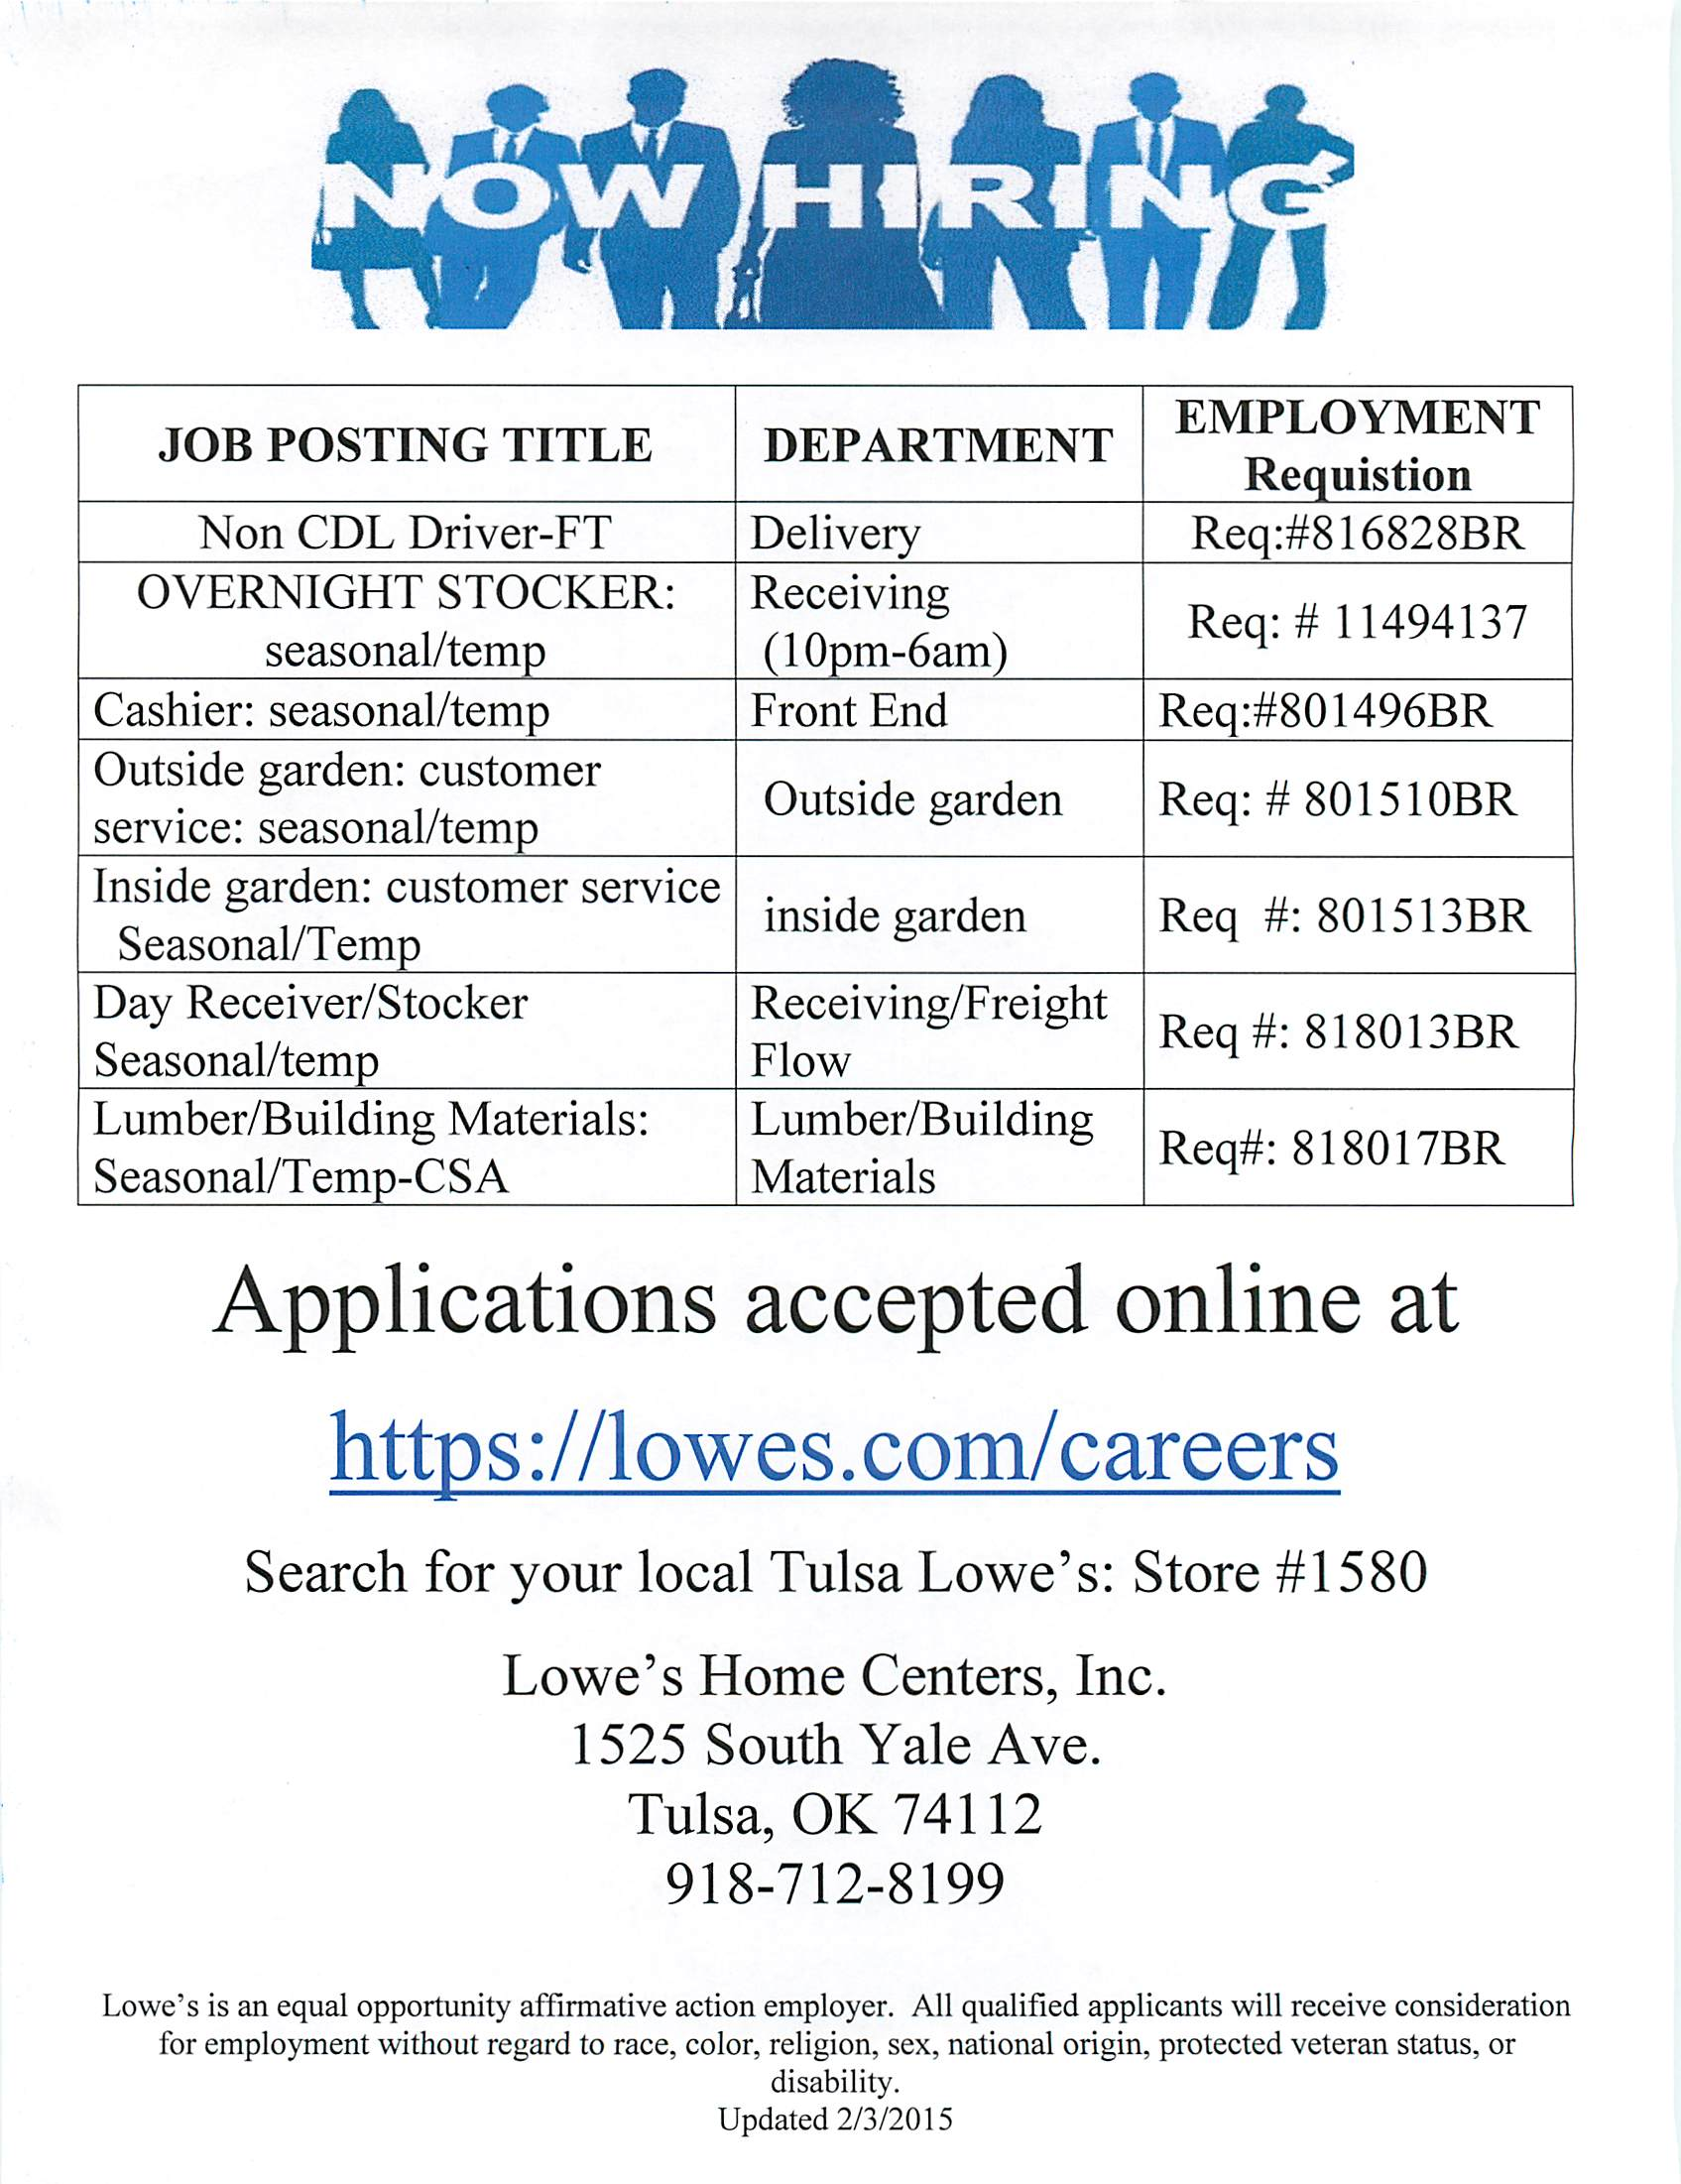 Overnight Stocker Resume Objective Lowes Employment Opportunity Head Cashier Resume Samples